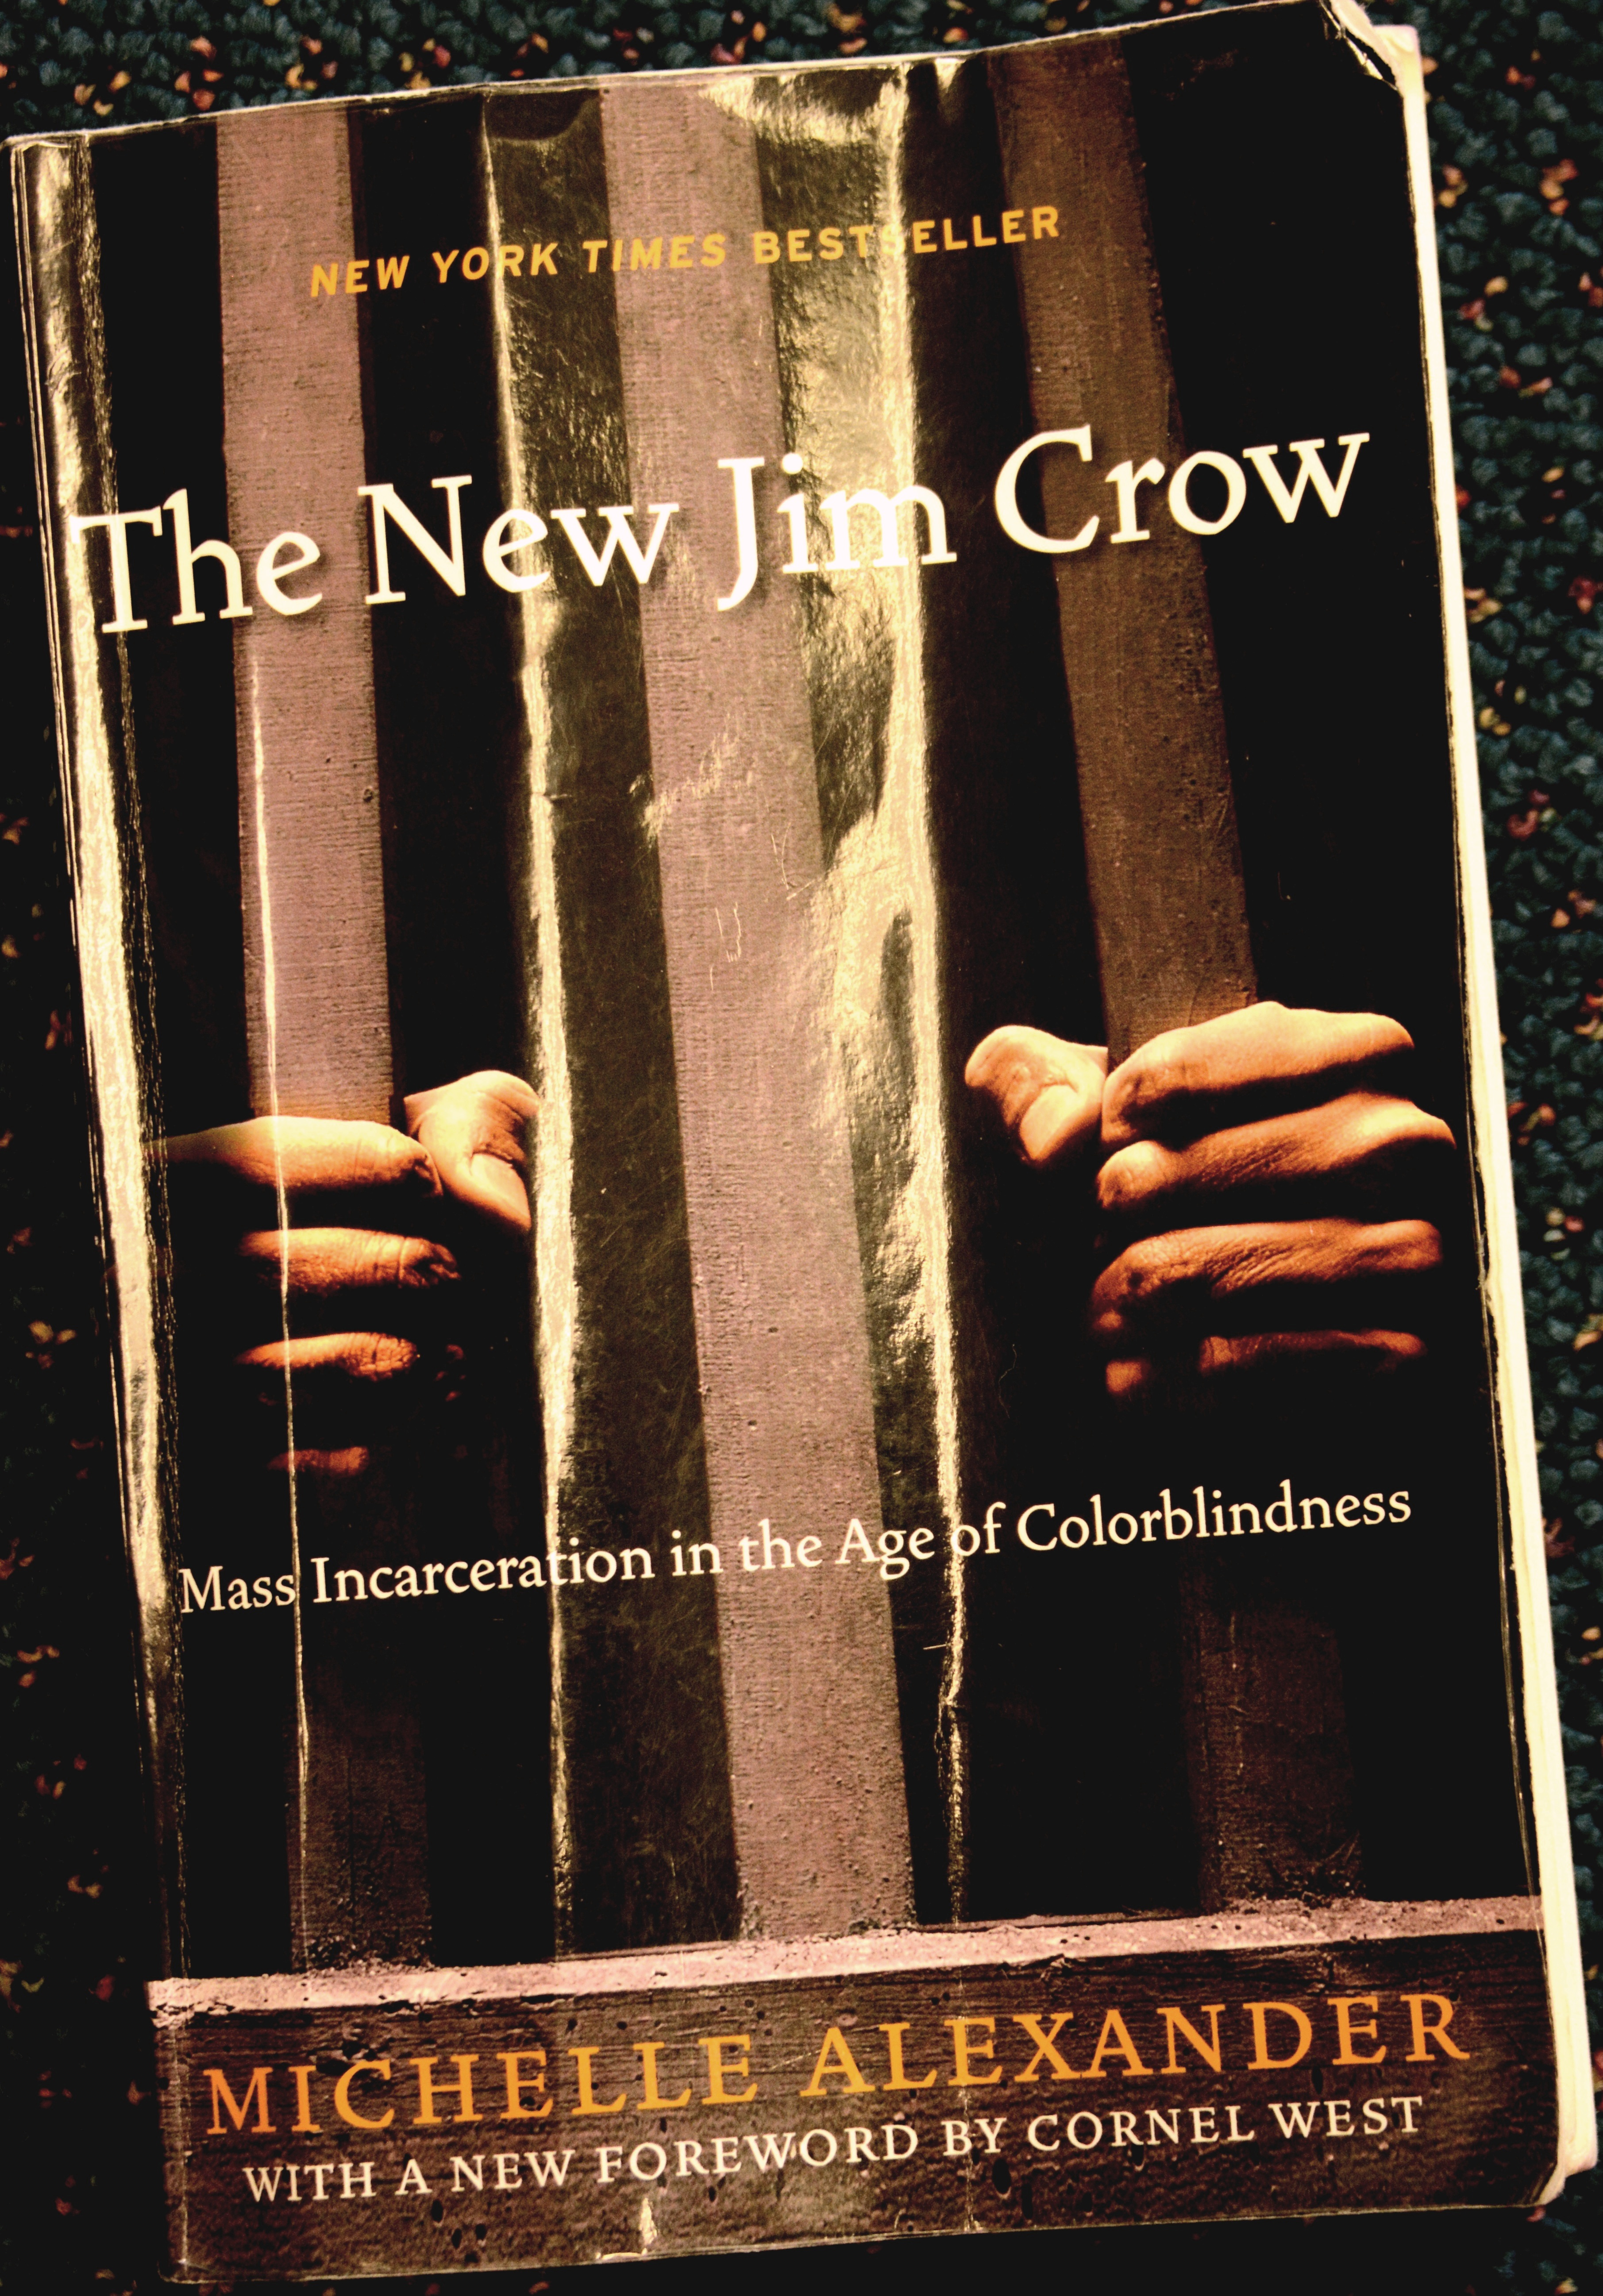 """the neew jim crow essay The new jim crow by michelle alexander racial control is nothing new the only thing is, more recently it's being expanded and labeled as class-based discrimination to avoid the use of the term """"racism""""."""